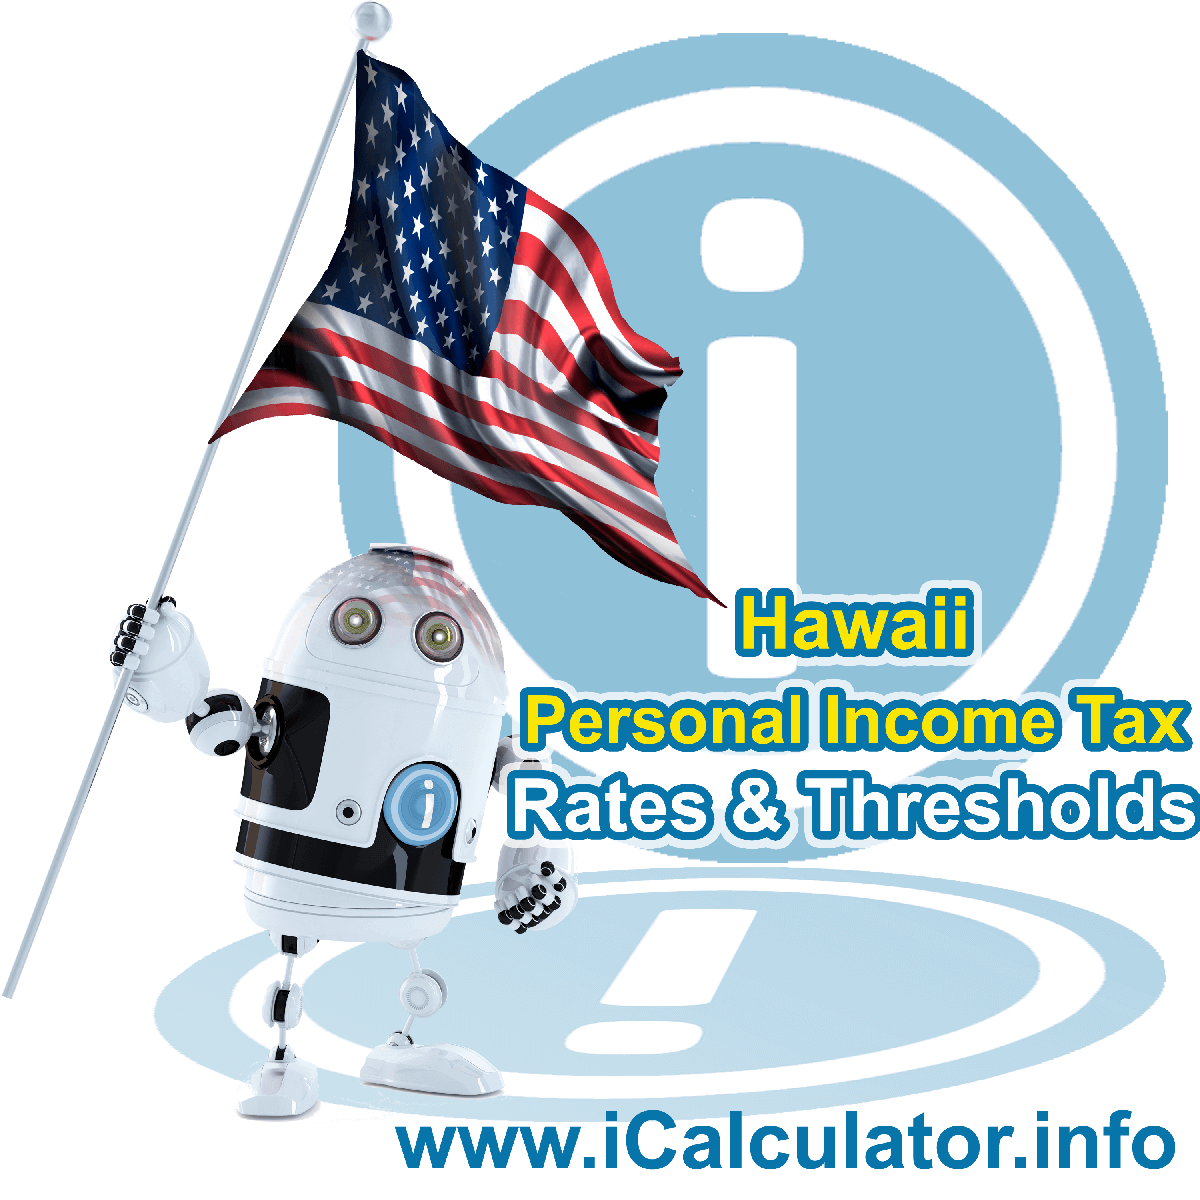 Hawaii State Tax Tables 2020. This image displays details of the Hawaii State Tax Tables for the 2020 tax return year which is provided in support of the 2020 US Tax Calculator